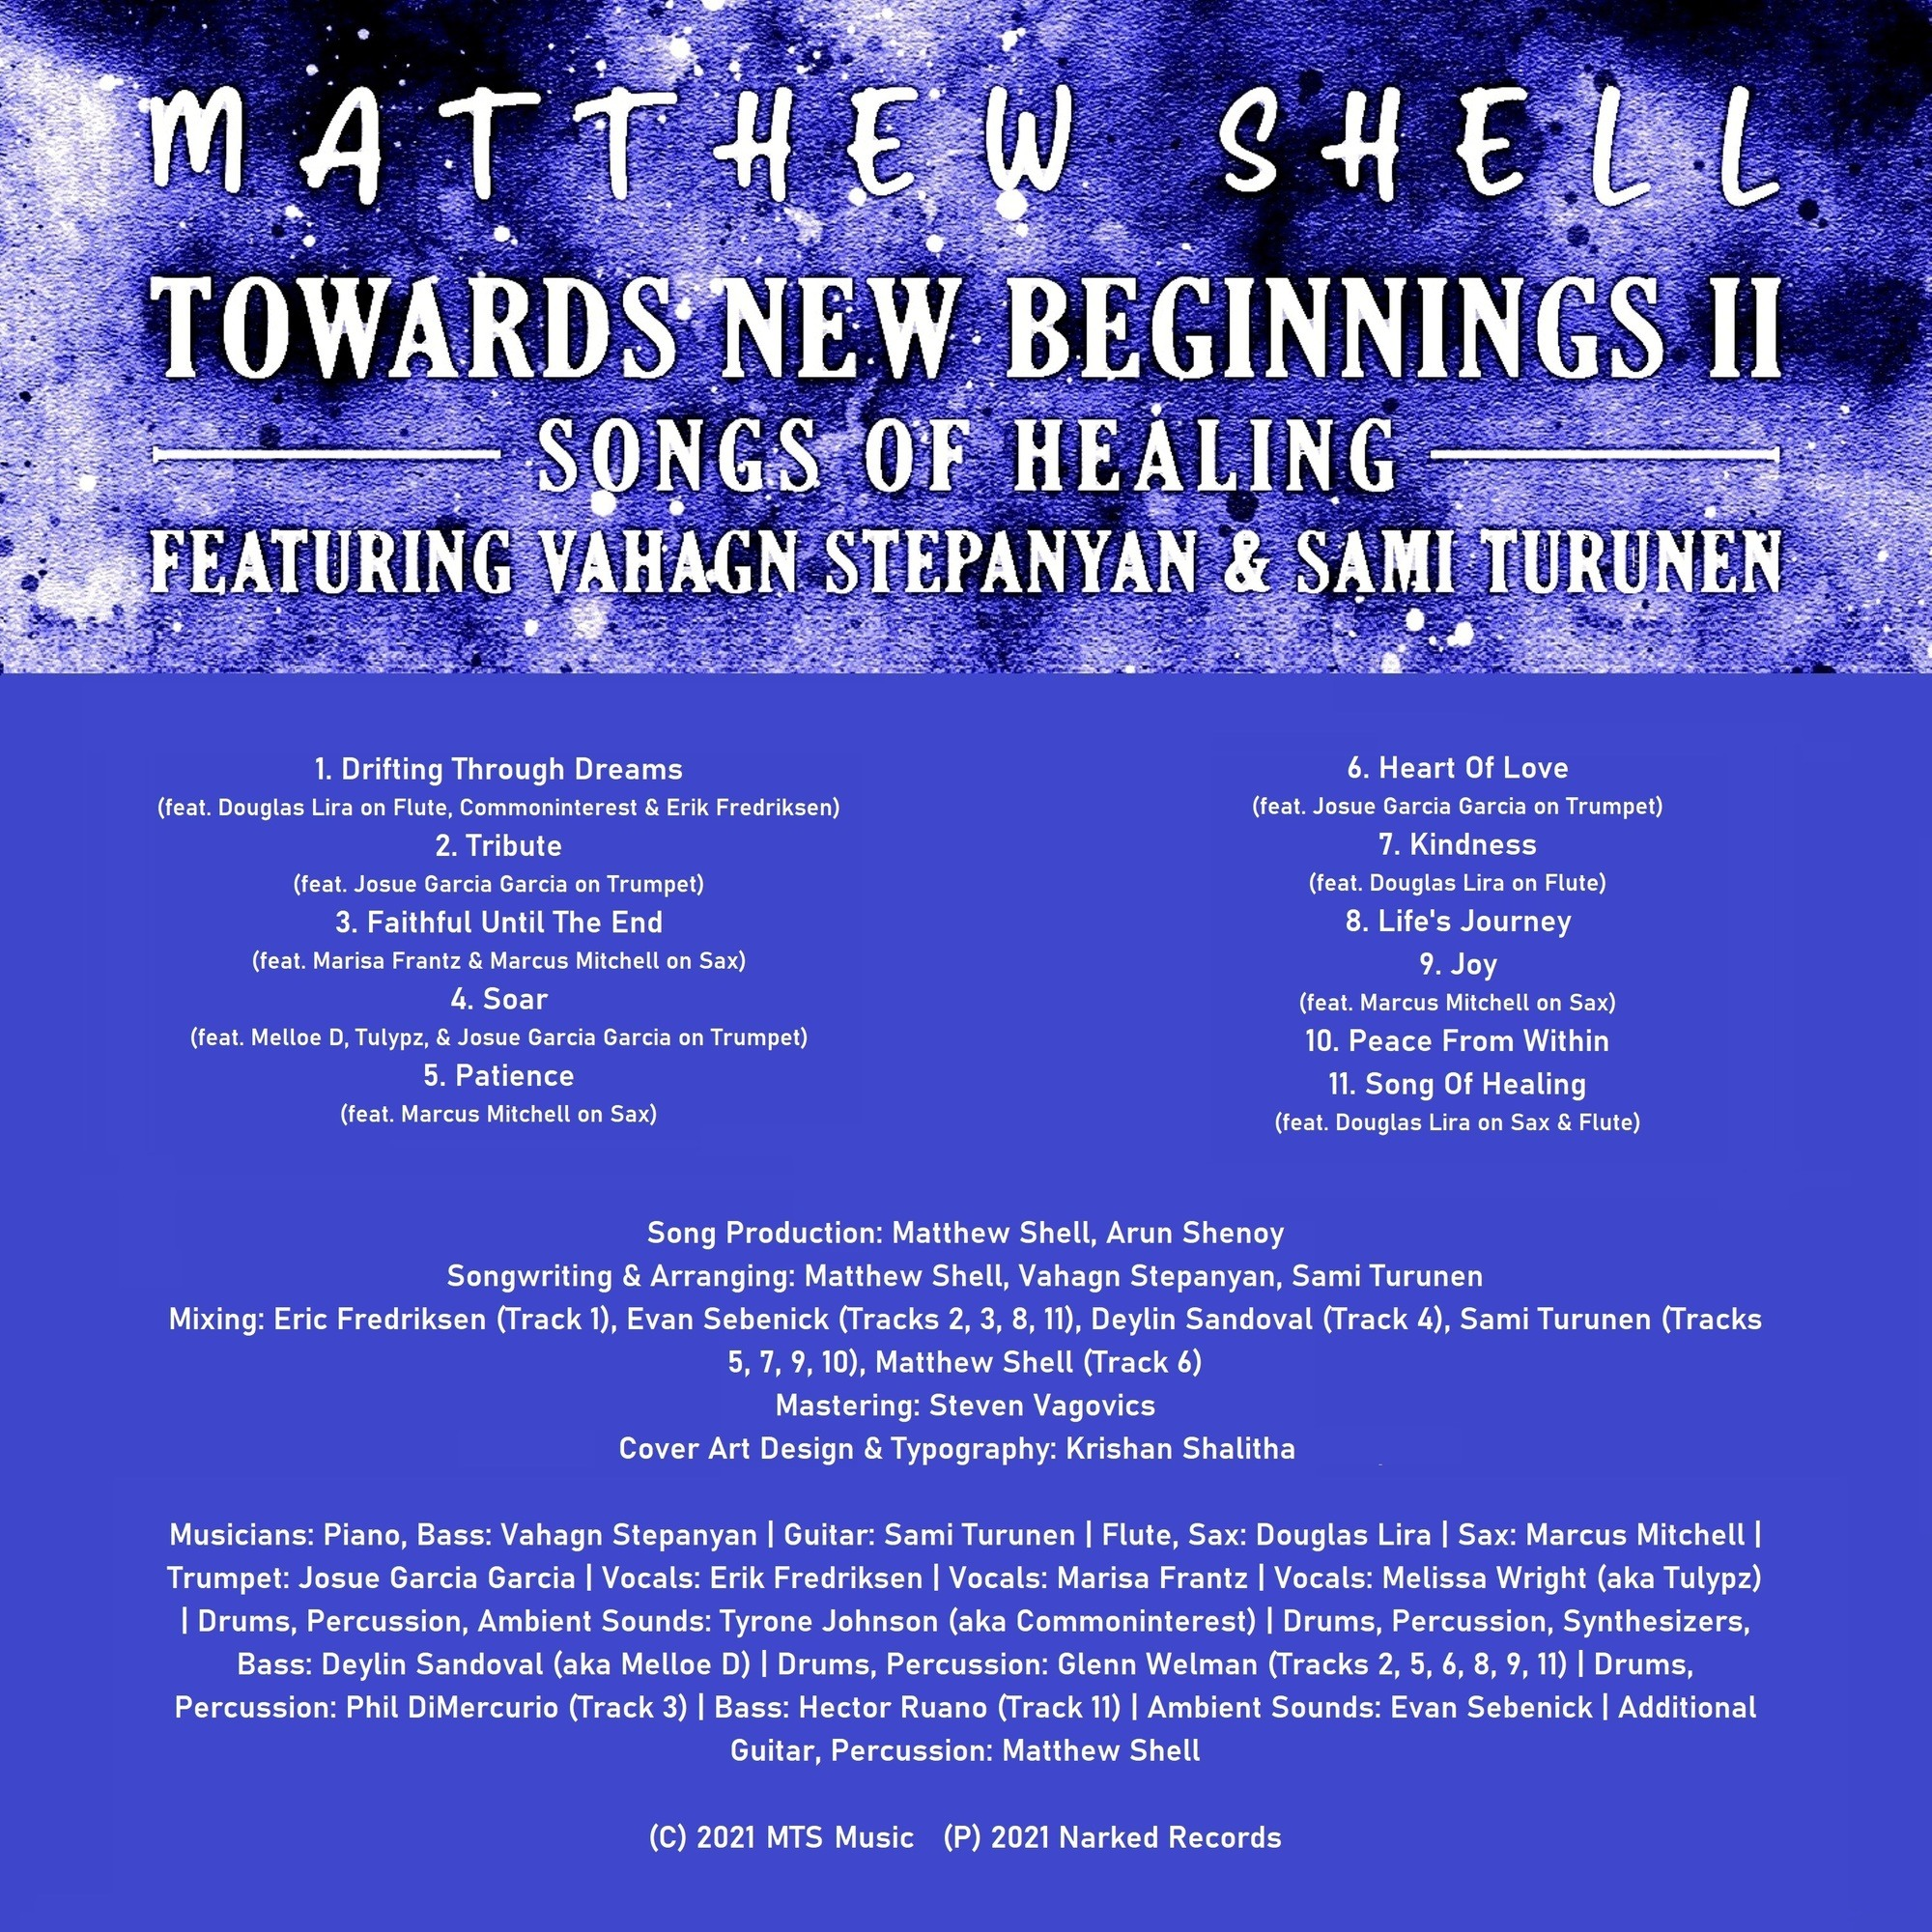 Towards New Beginnings II - Credits Sheet